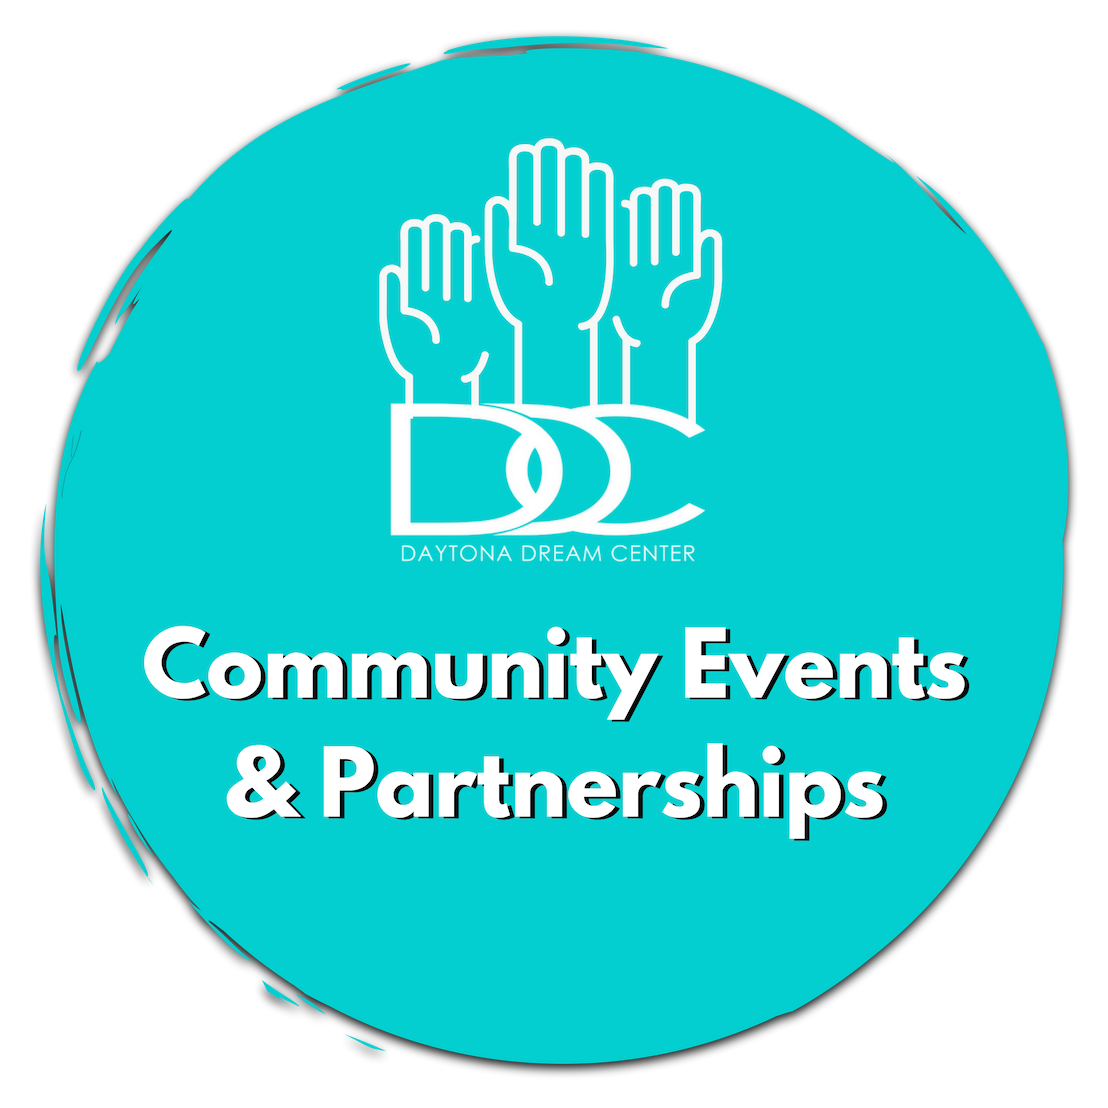 Community Events & Partnerships-2-2.png